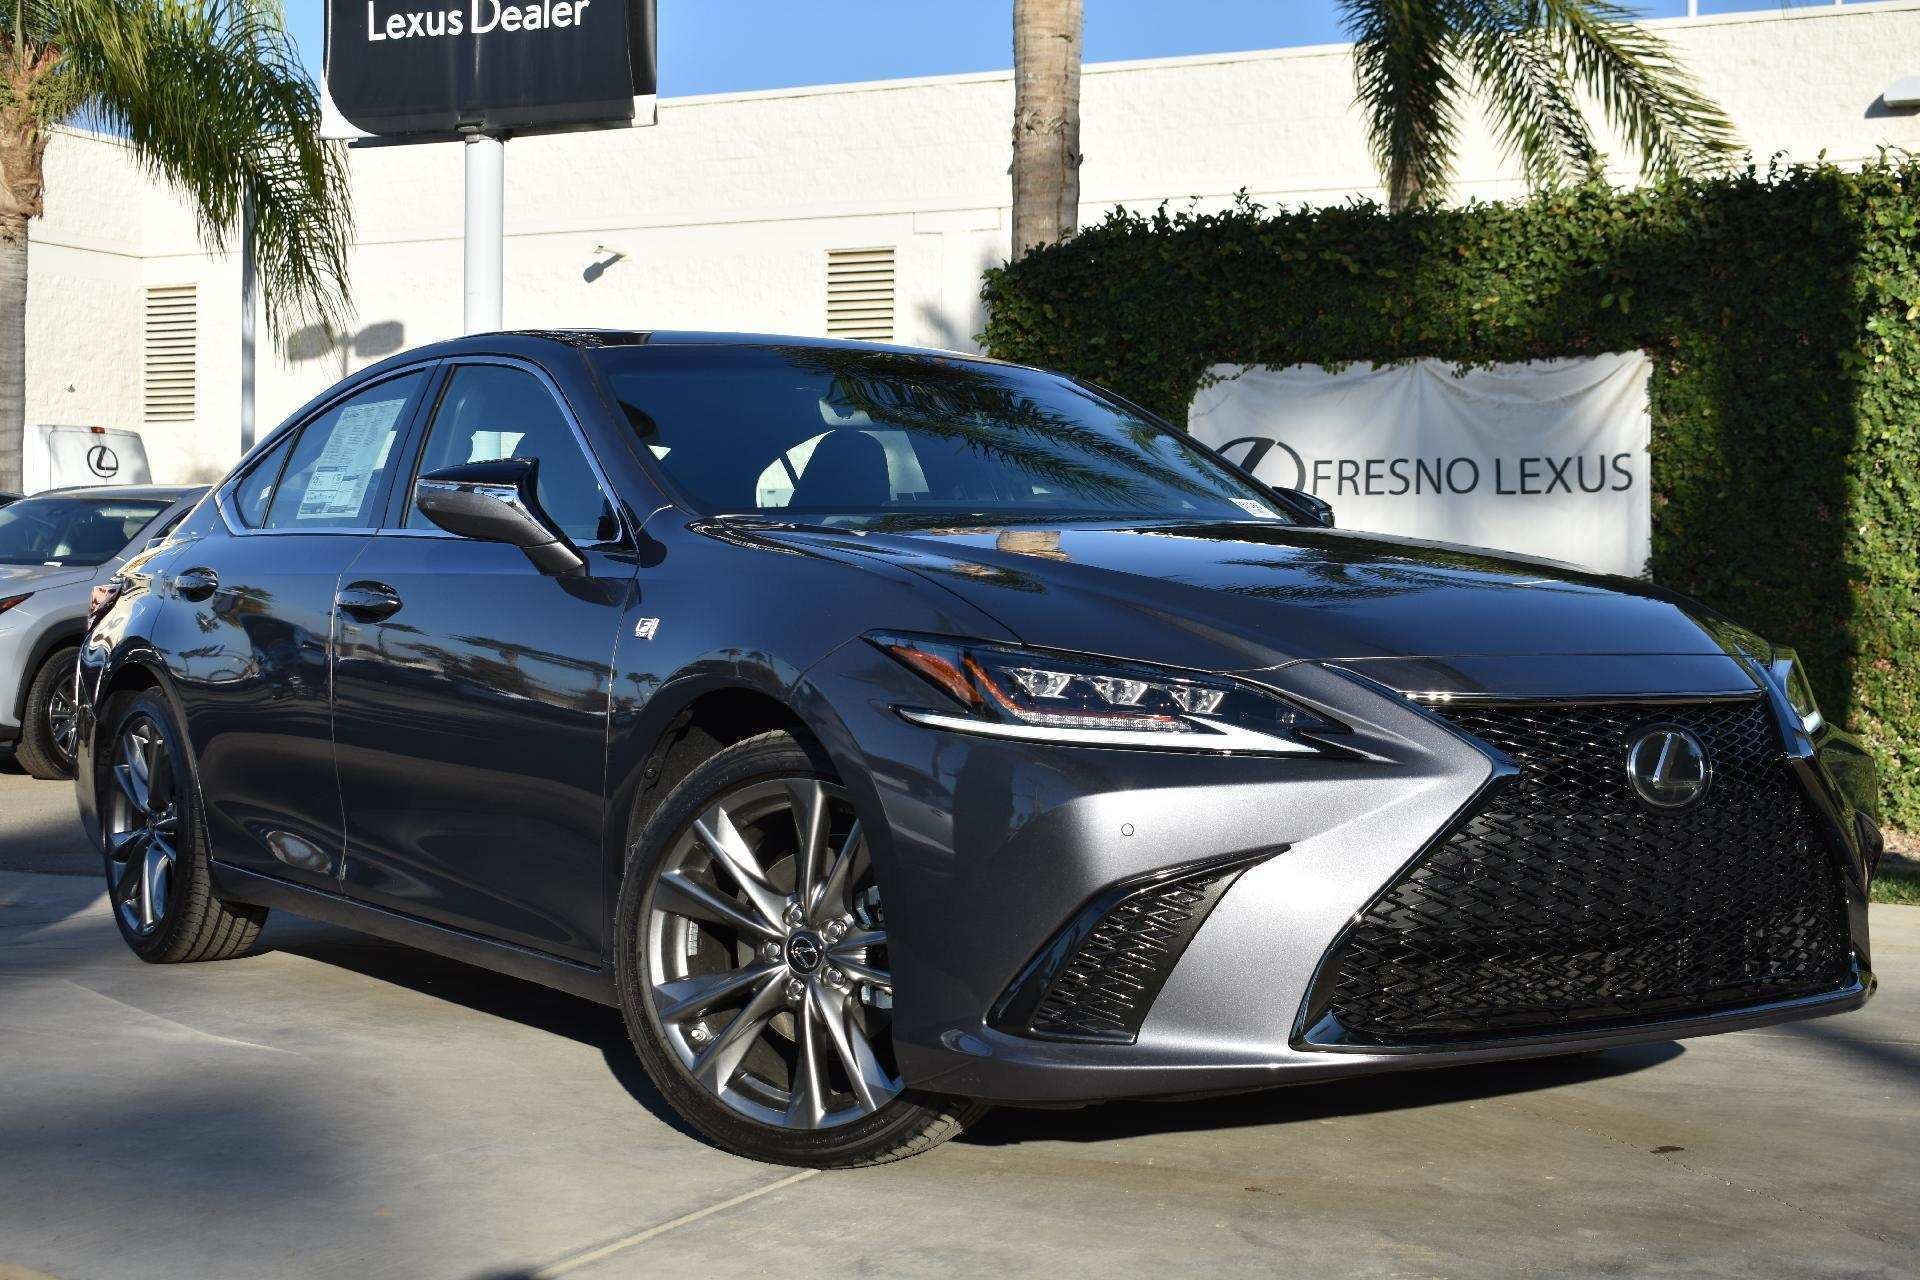 73 Concept of 2019 Lexus Es 350 F Sport New Concept with 2019 Lexus Es 350 F Sport